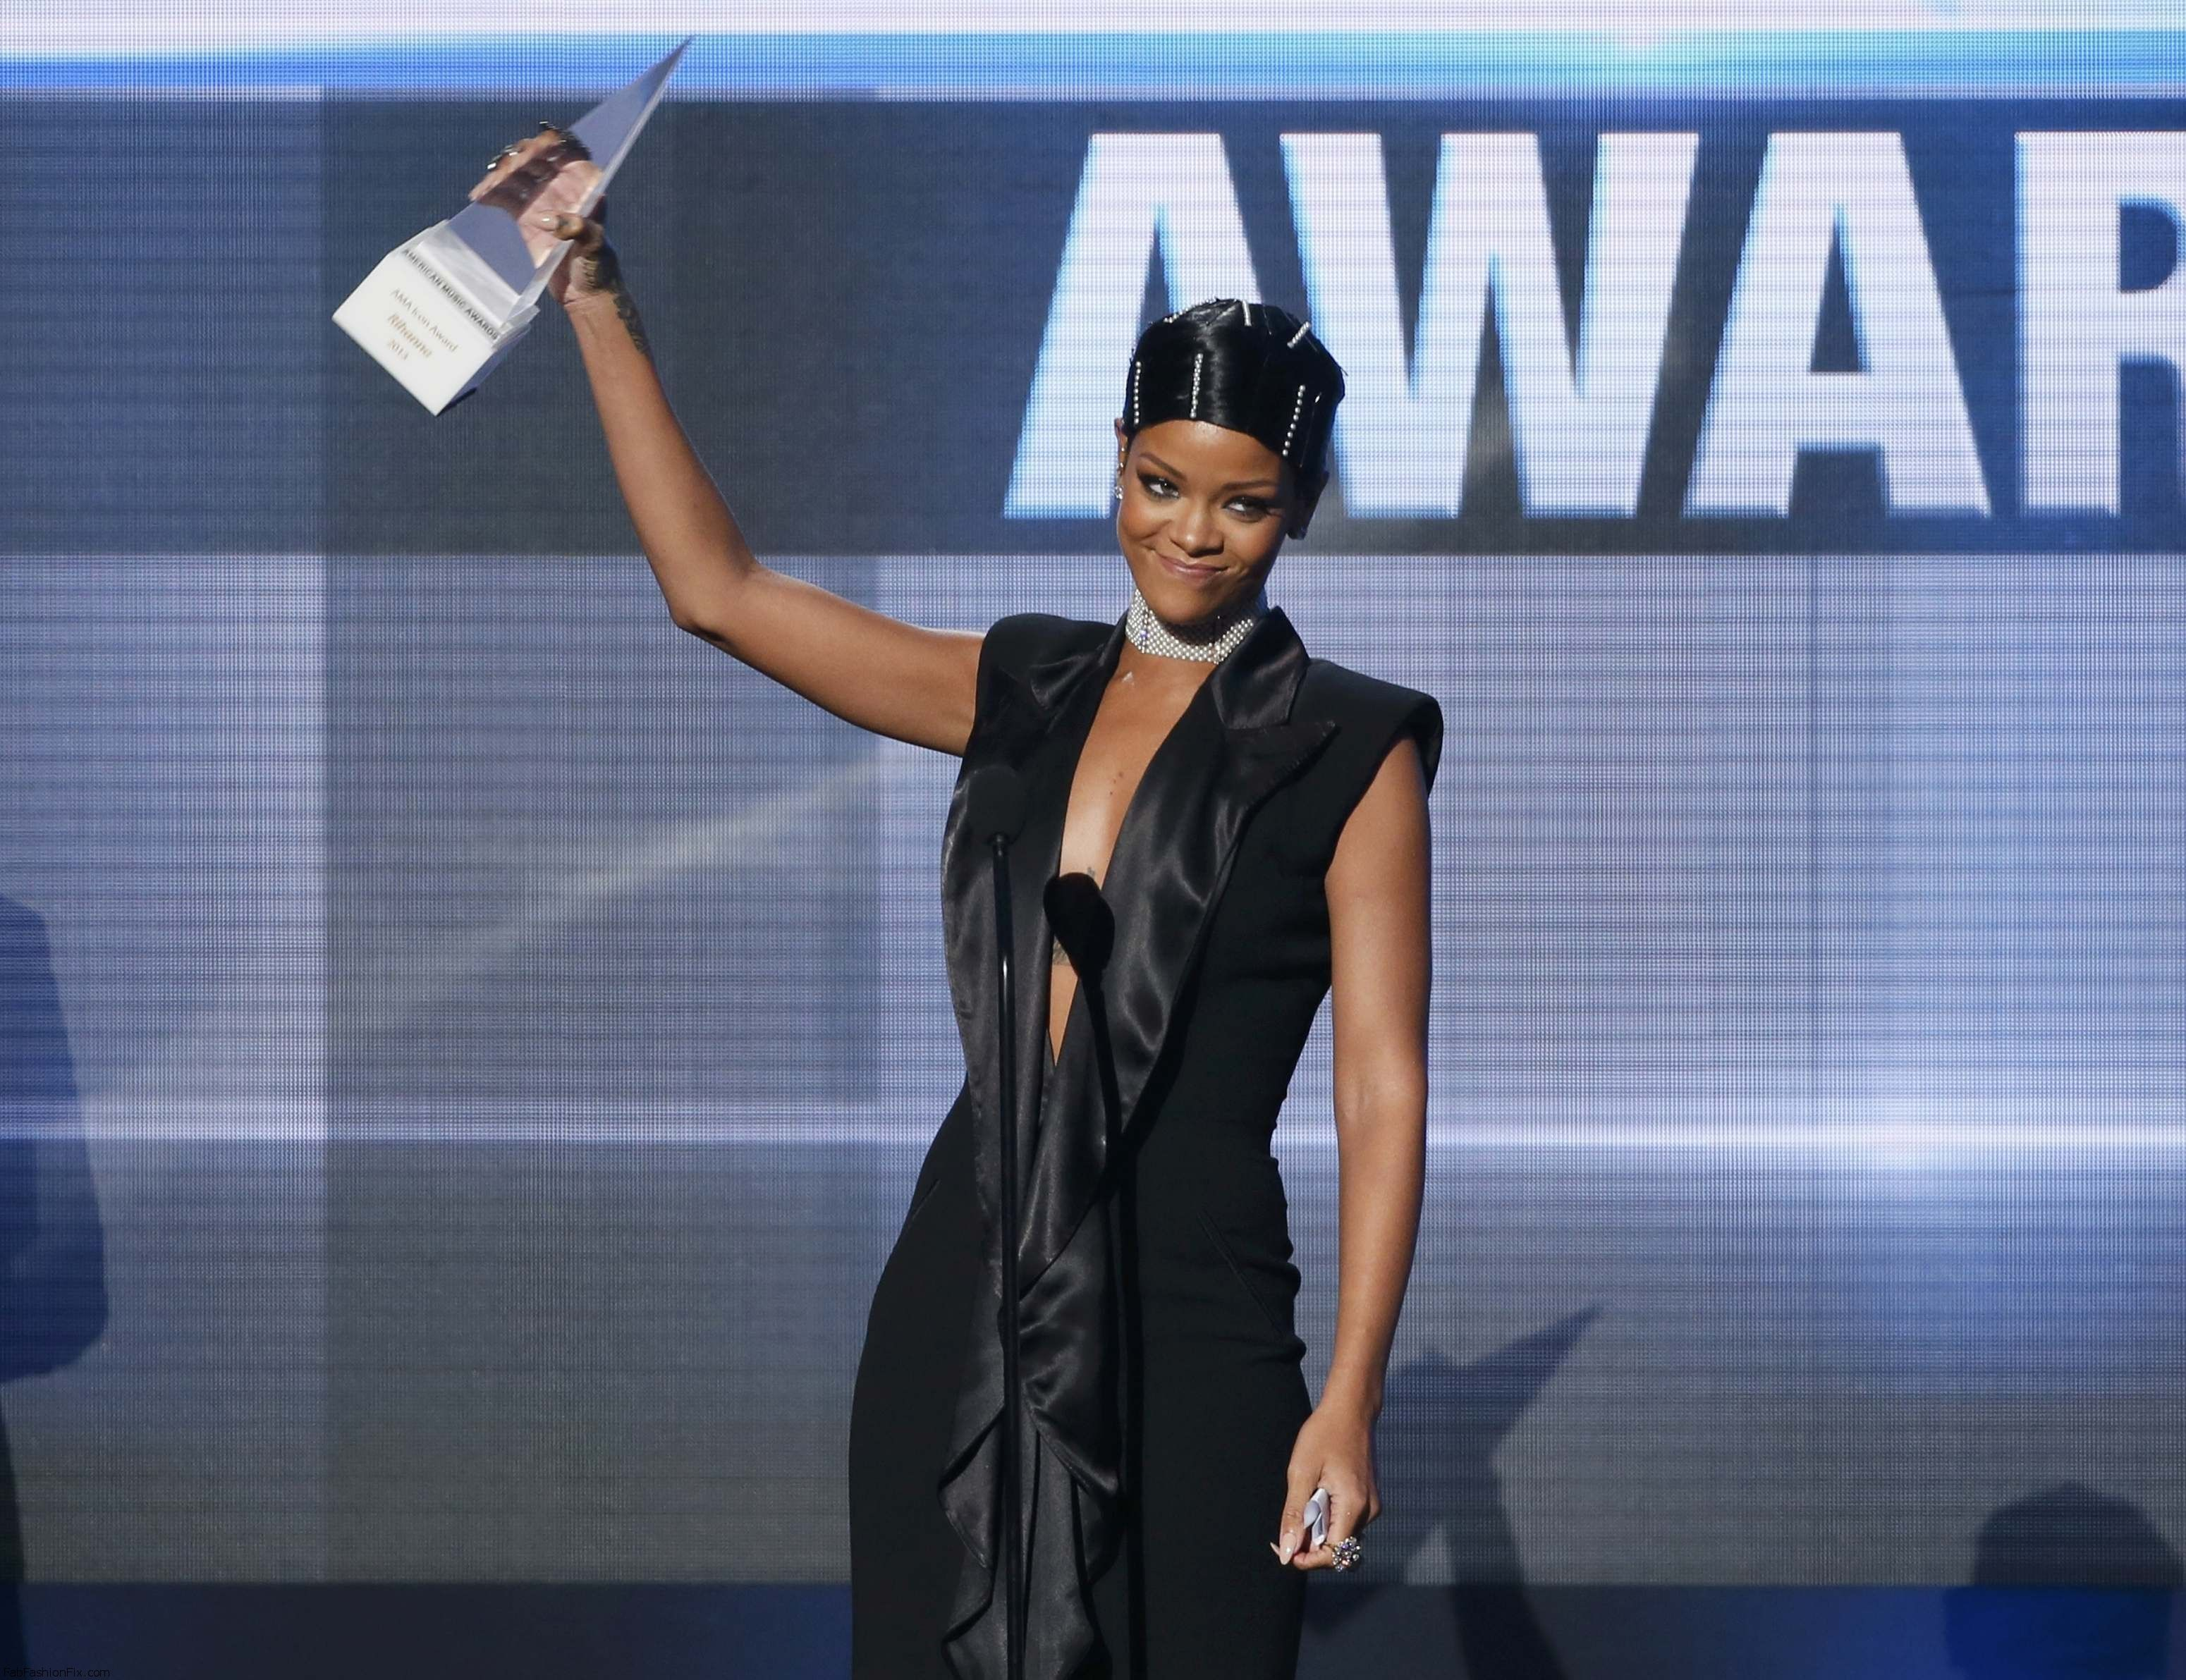 Rihanna_accepts_the_Icon_Award_from_her_mother_Monica_Fenty_at_the_41st_American_Music_Awards_in_Los_Angeles_24.11.2013_06